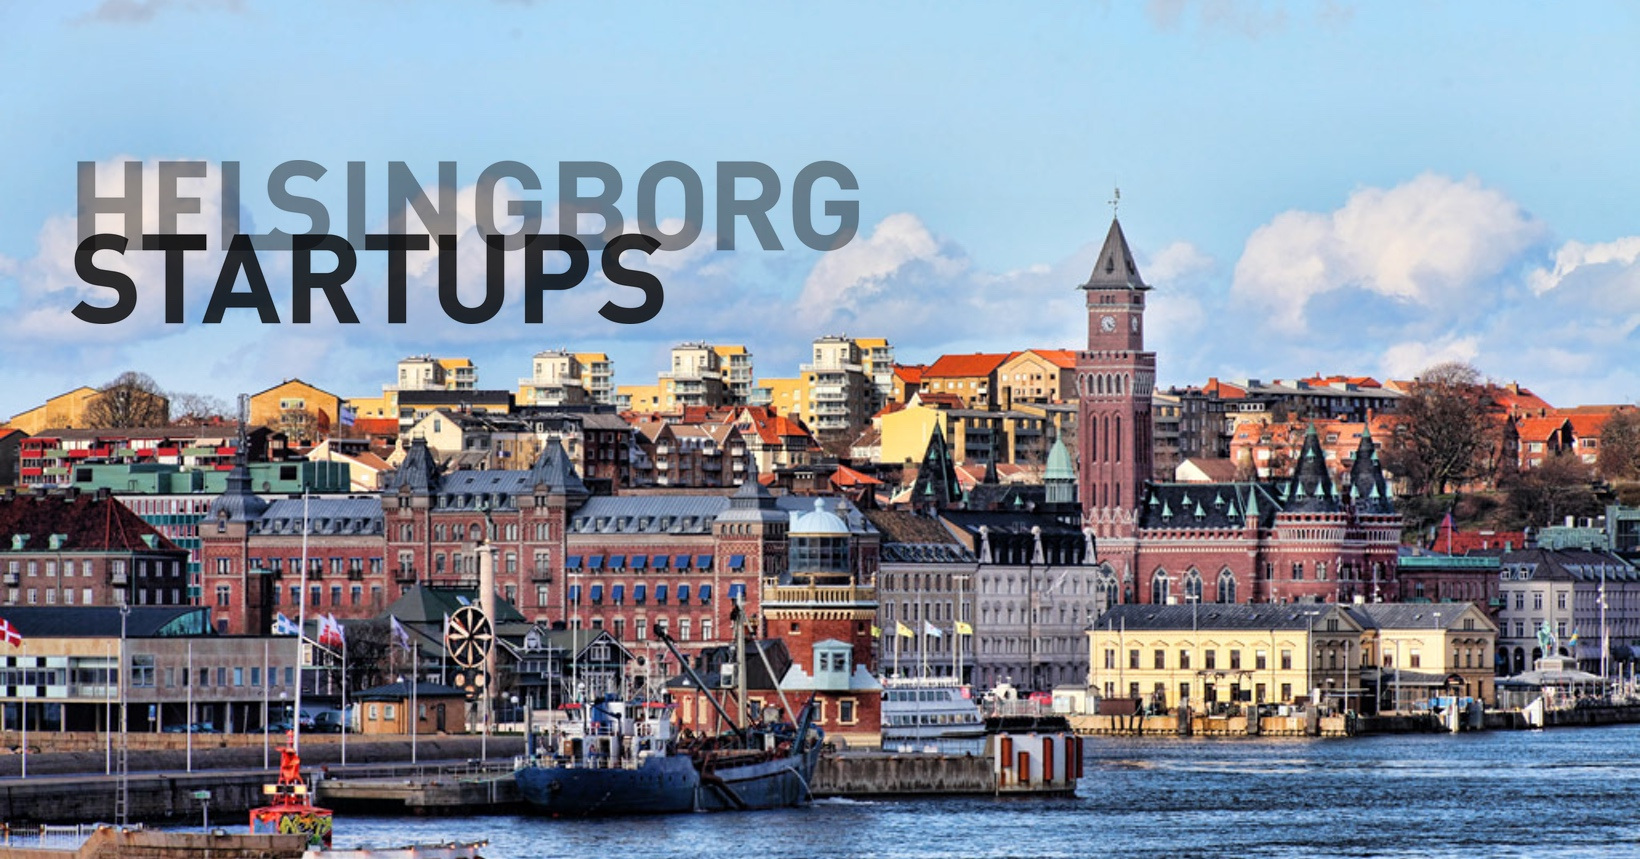 Join Helsingborg startups - The grassroots startup initiative launched by the startup community in 2015.